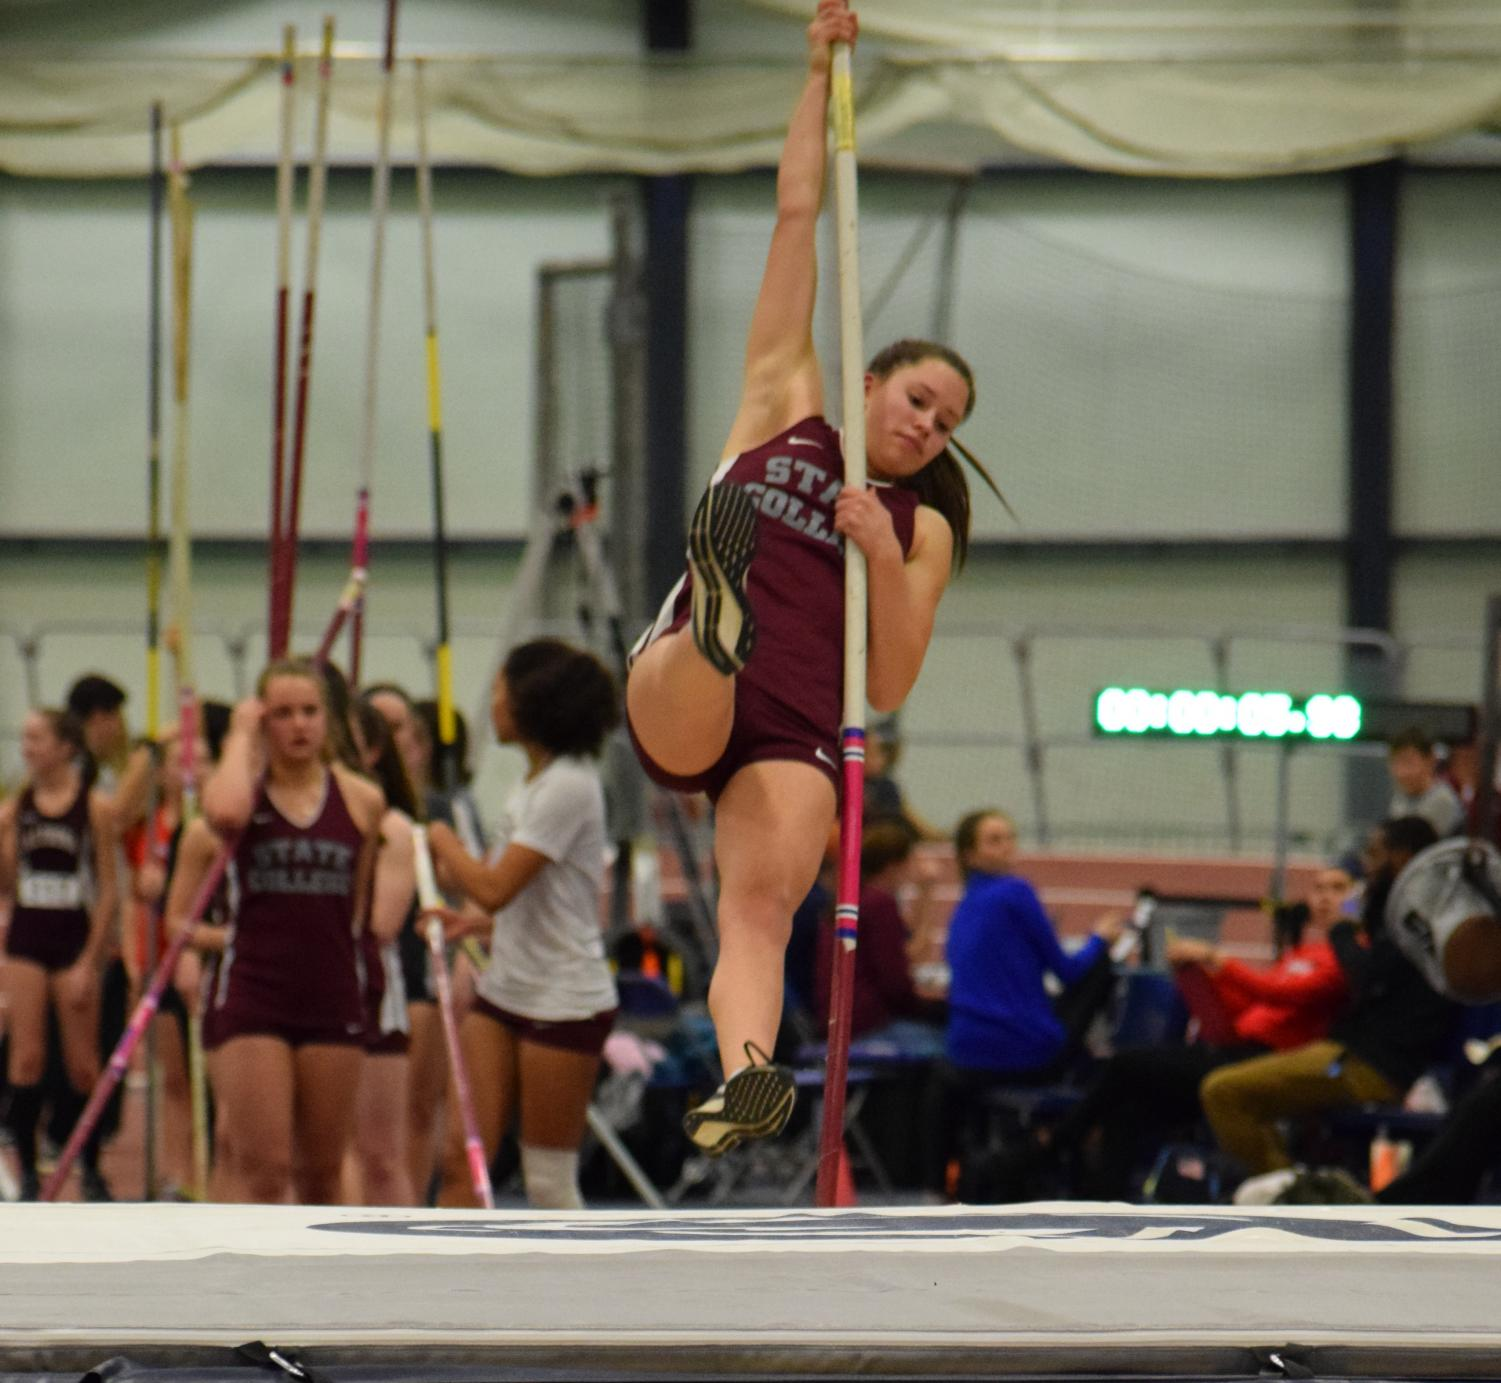 Mia Iceland warms up before an indoor track meet. The pole vaulter has been competing since the beginning of last year.